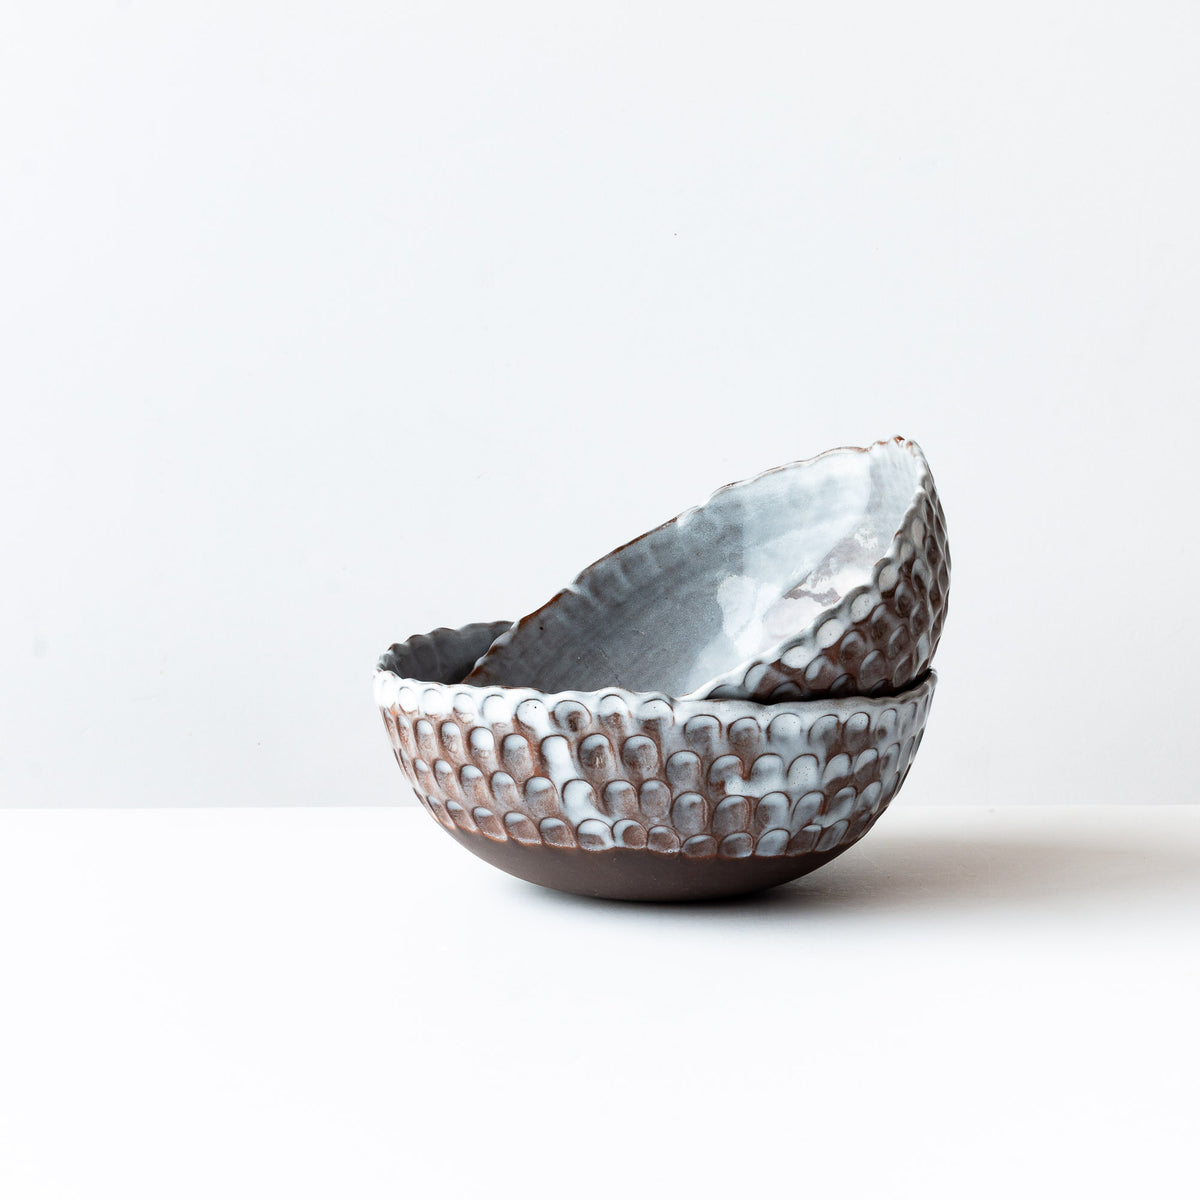 Medium Handmade Stoneware Pinched Bowls  - Sold by Chic & Basta